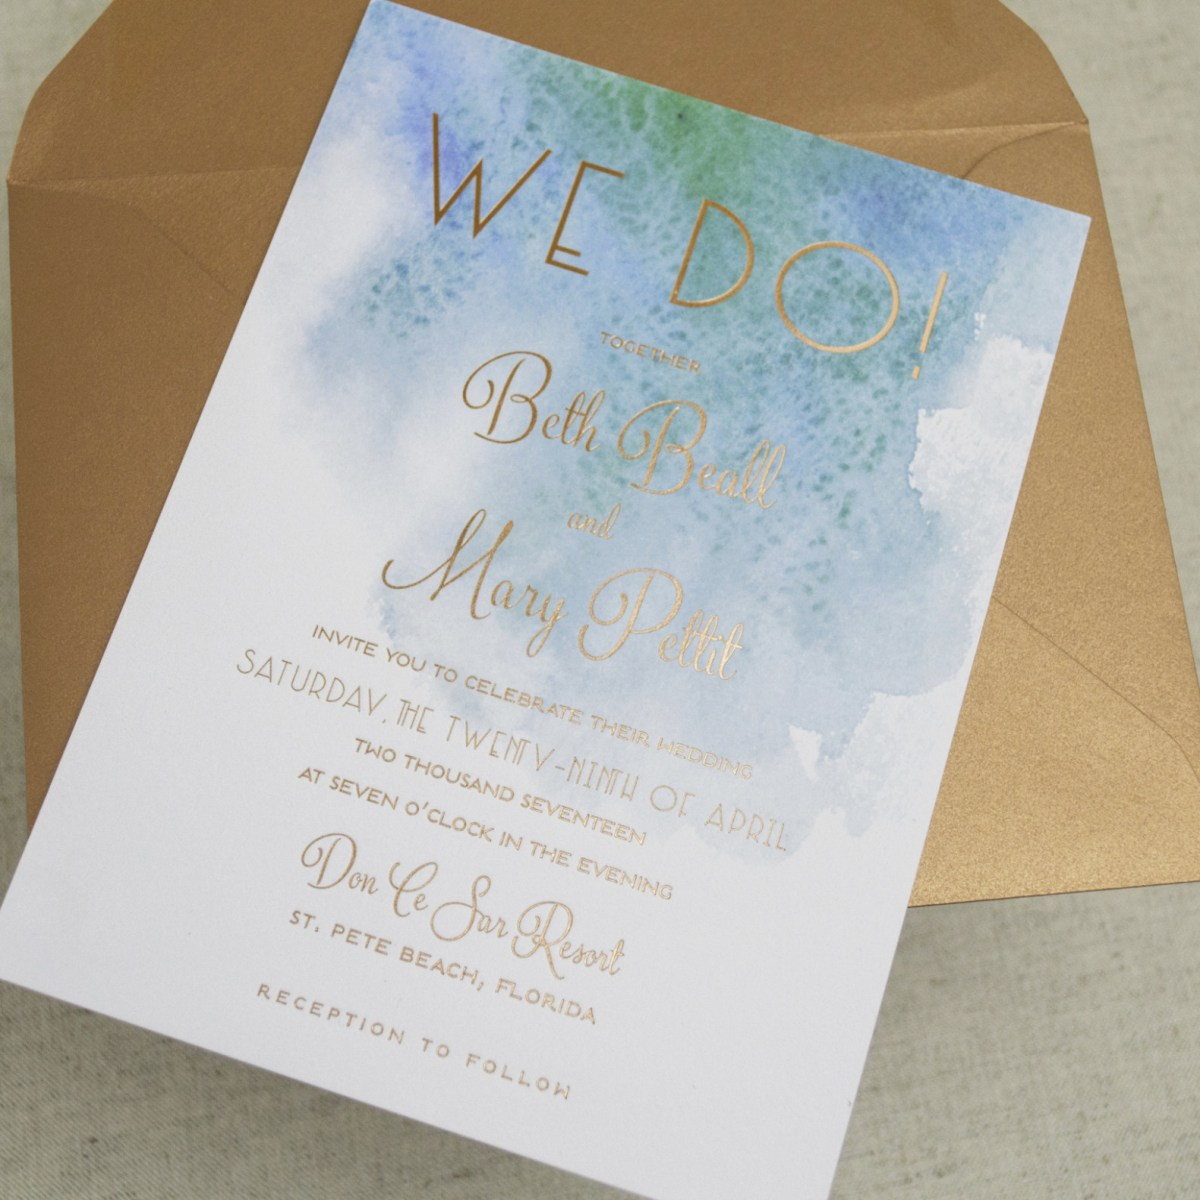 Cheap Beach Wedding Invitations Beach Theme Wedding Invitations Cheap Wedding Invitation Beach Theme